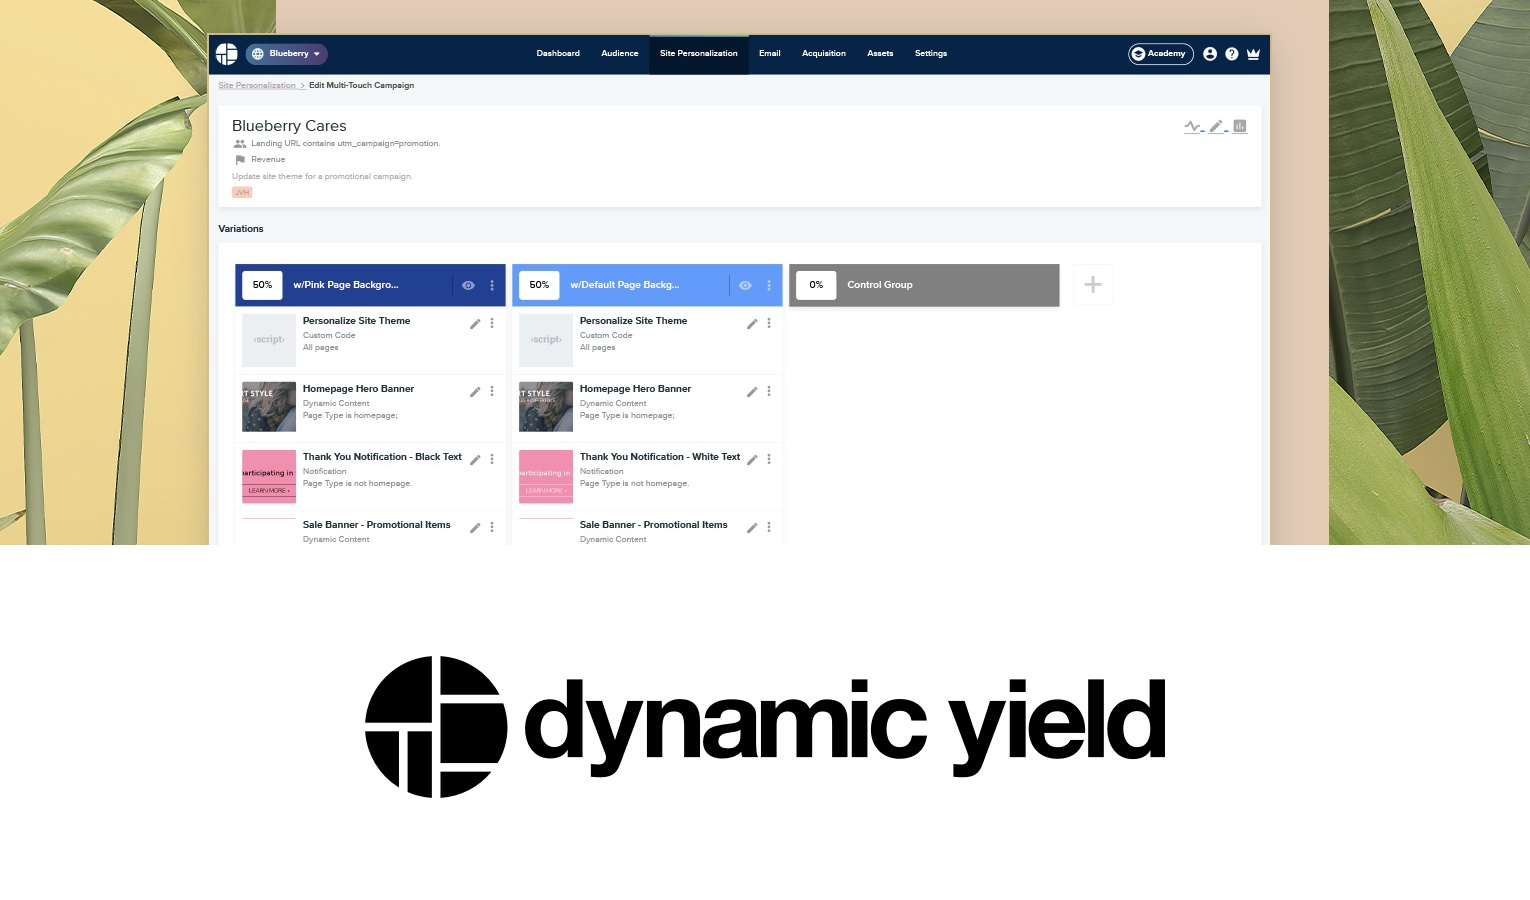 More wins, bigger deals: How Dynamic Yield made closing business a collaborative effort